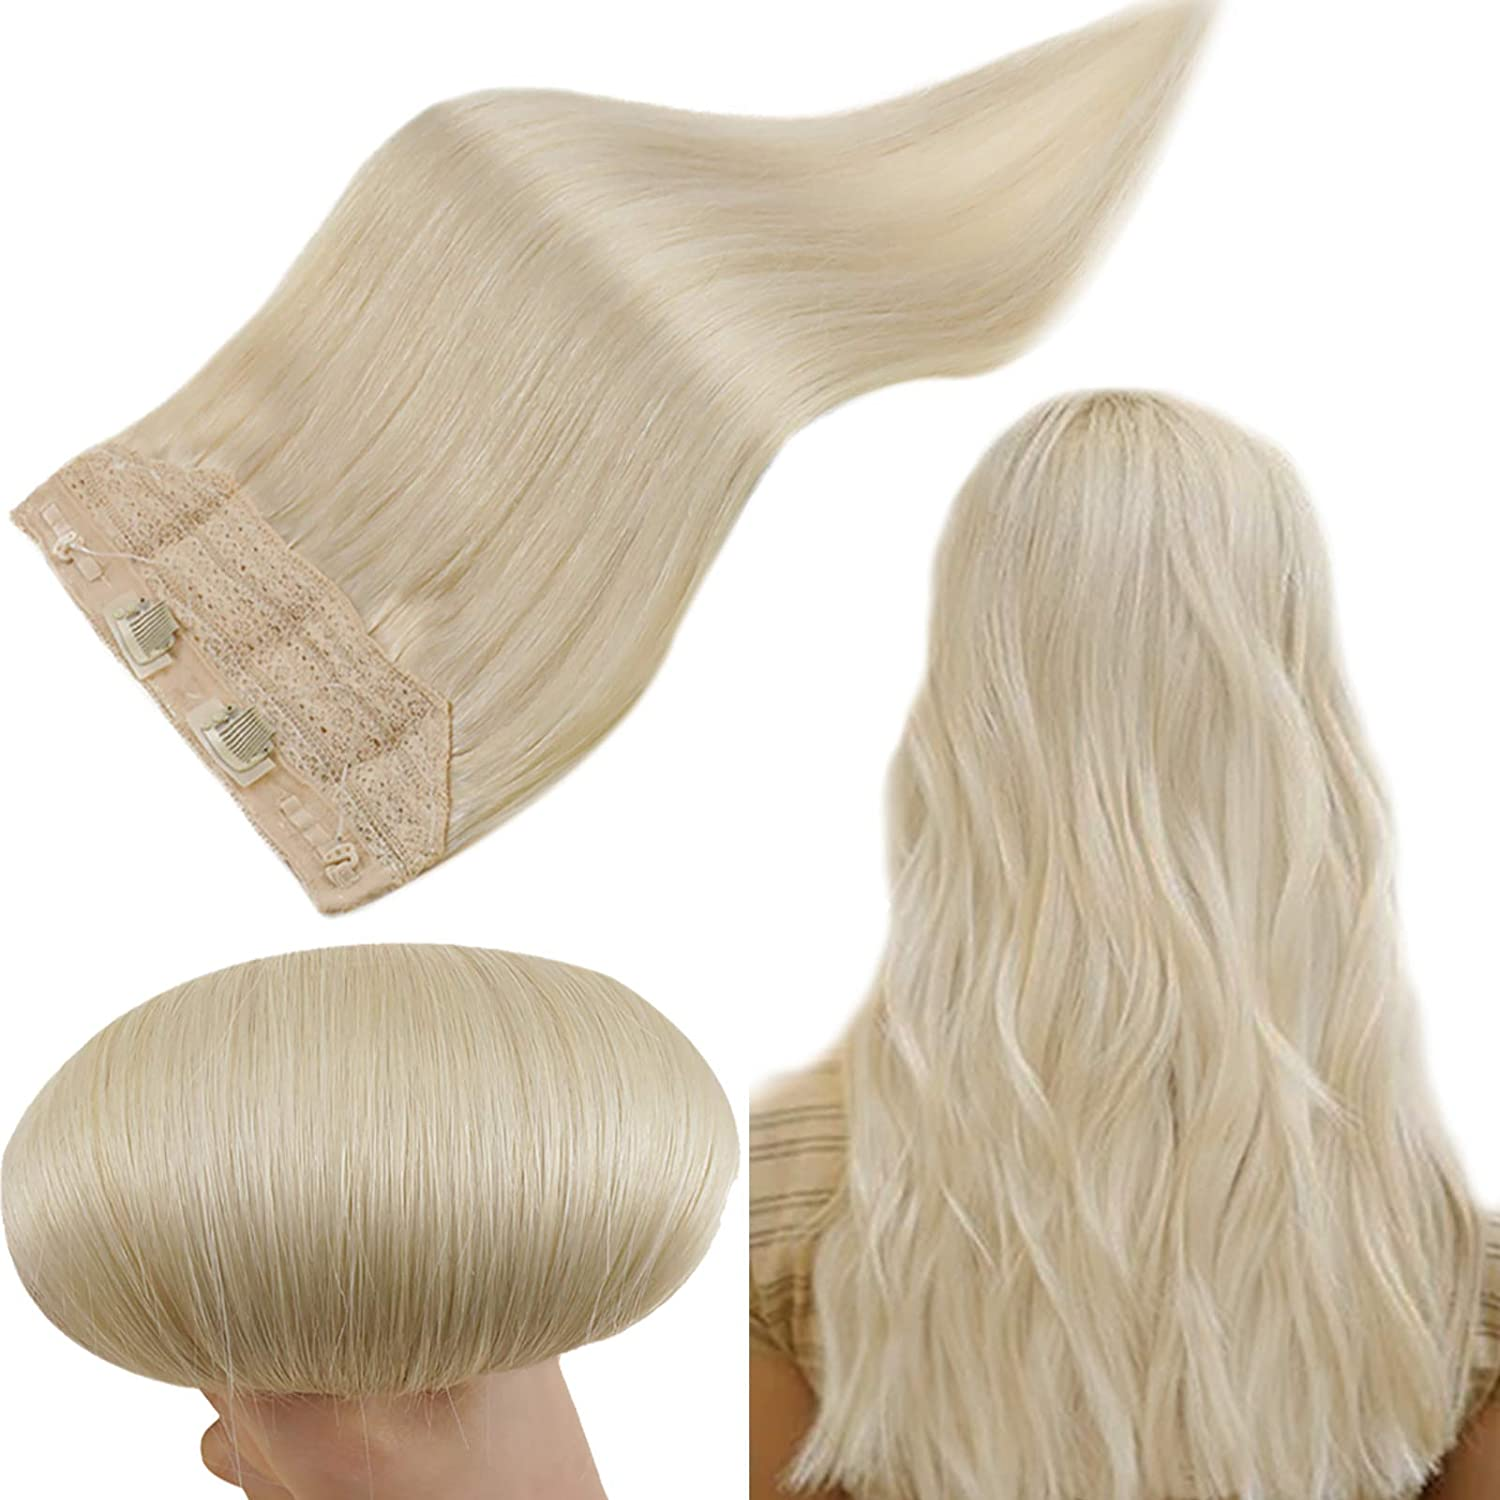 Runature Wire Hair Extension 14 Inches Color 60 Platinum Blonde 70 Gram Halo Hair Extensions One Piece Human Hair with Transparent Line for Women